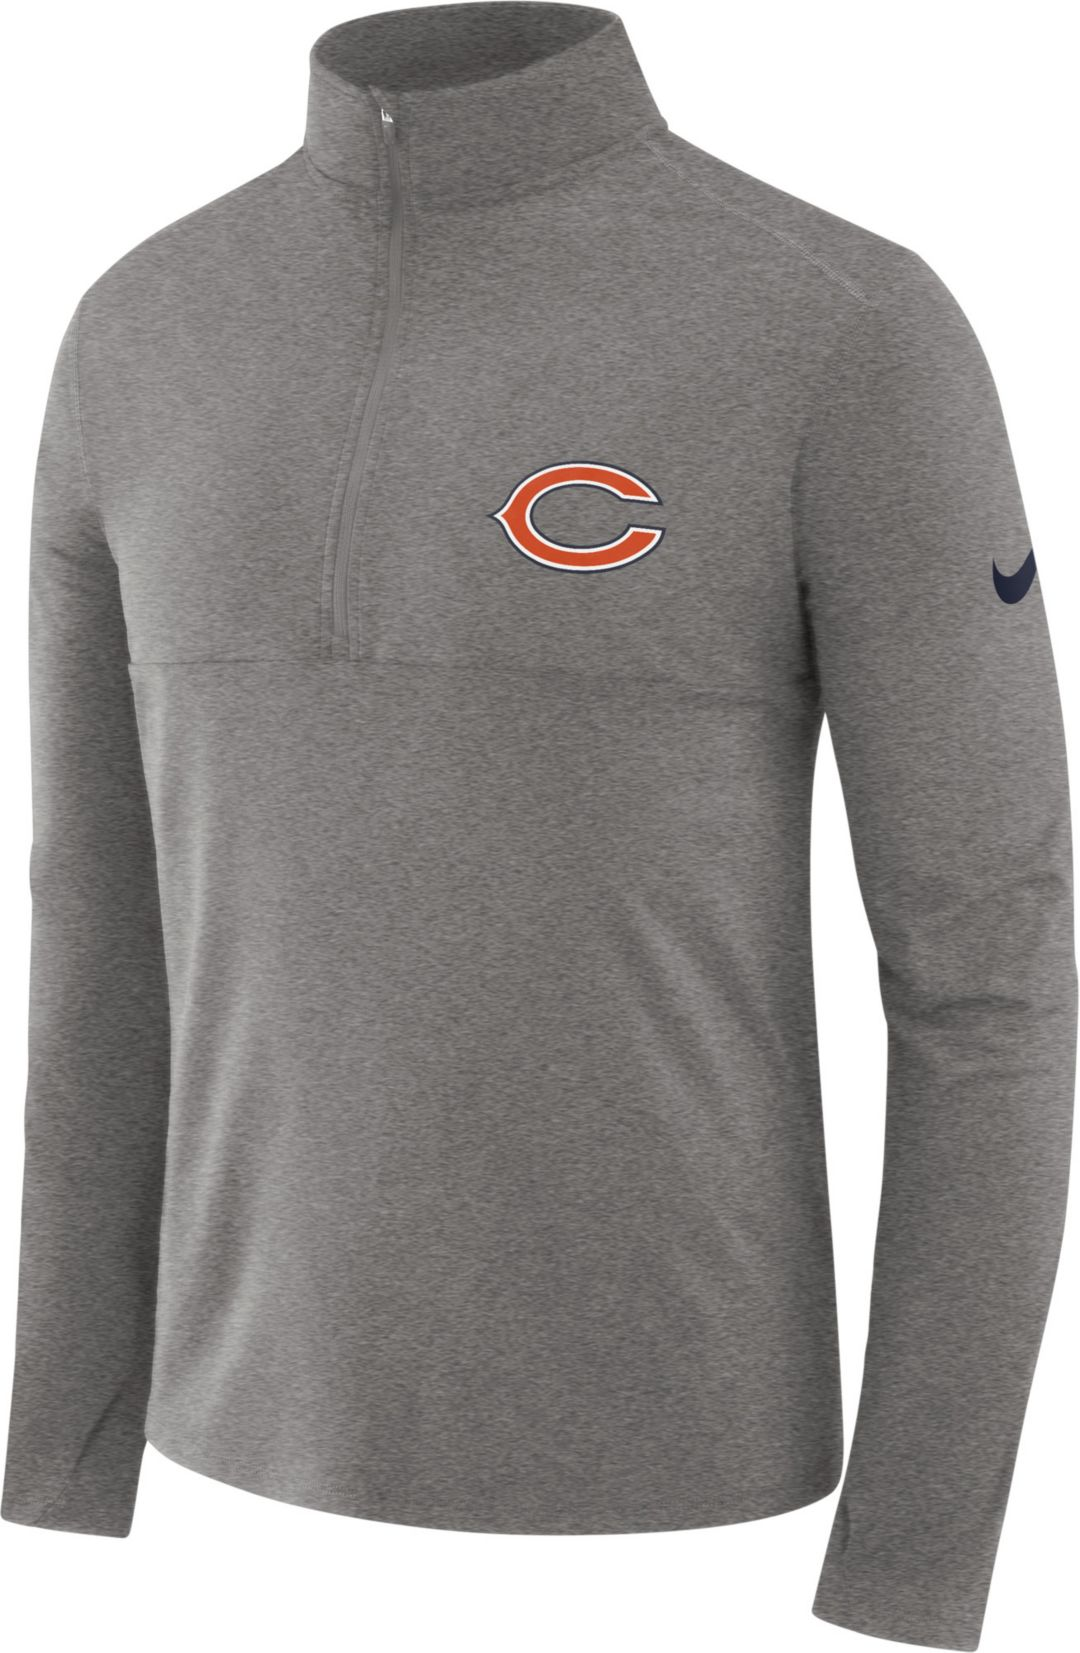 new style 2ce12 1c764 Nike Men's Chicago Bears Core Performance Grey Half-Zip Pullover Top